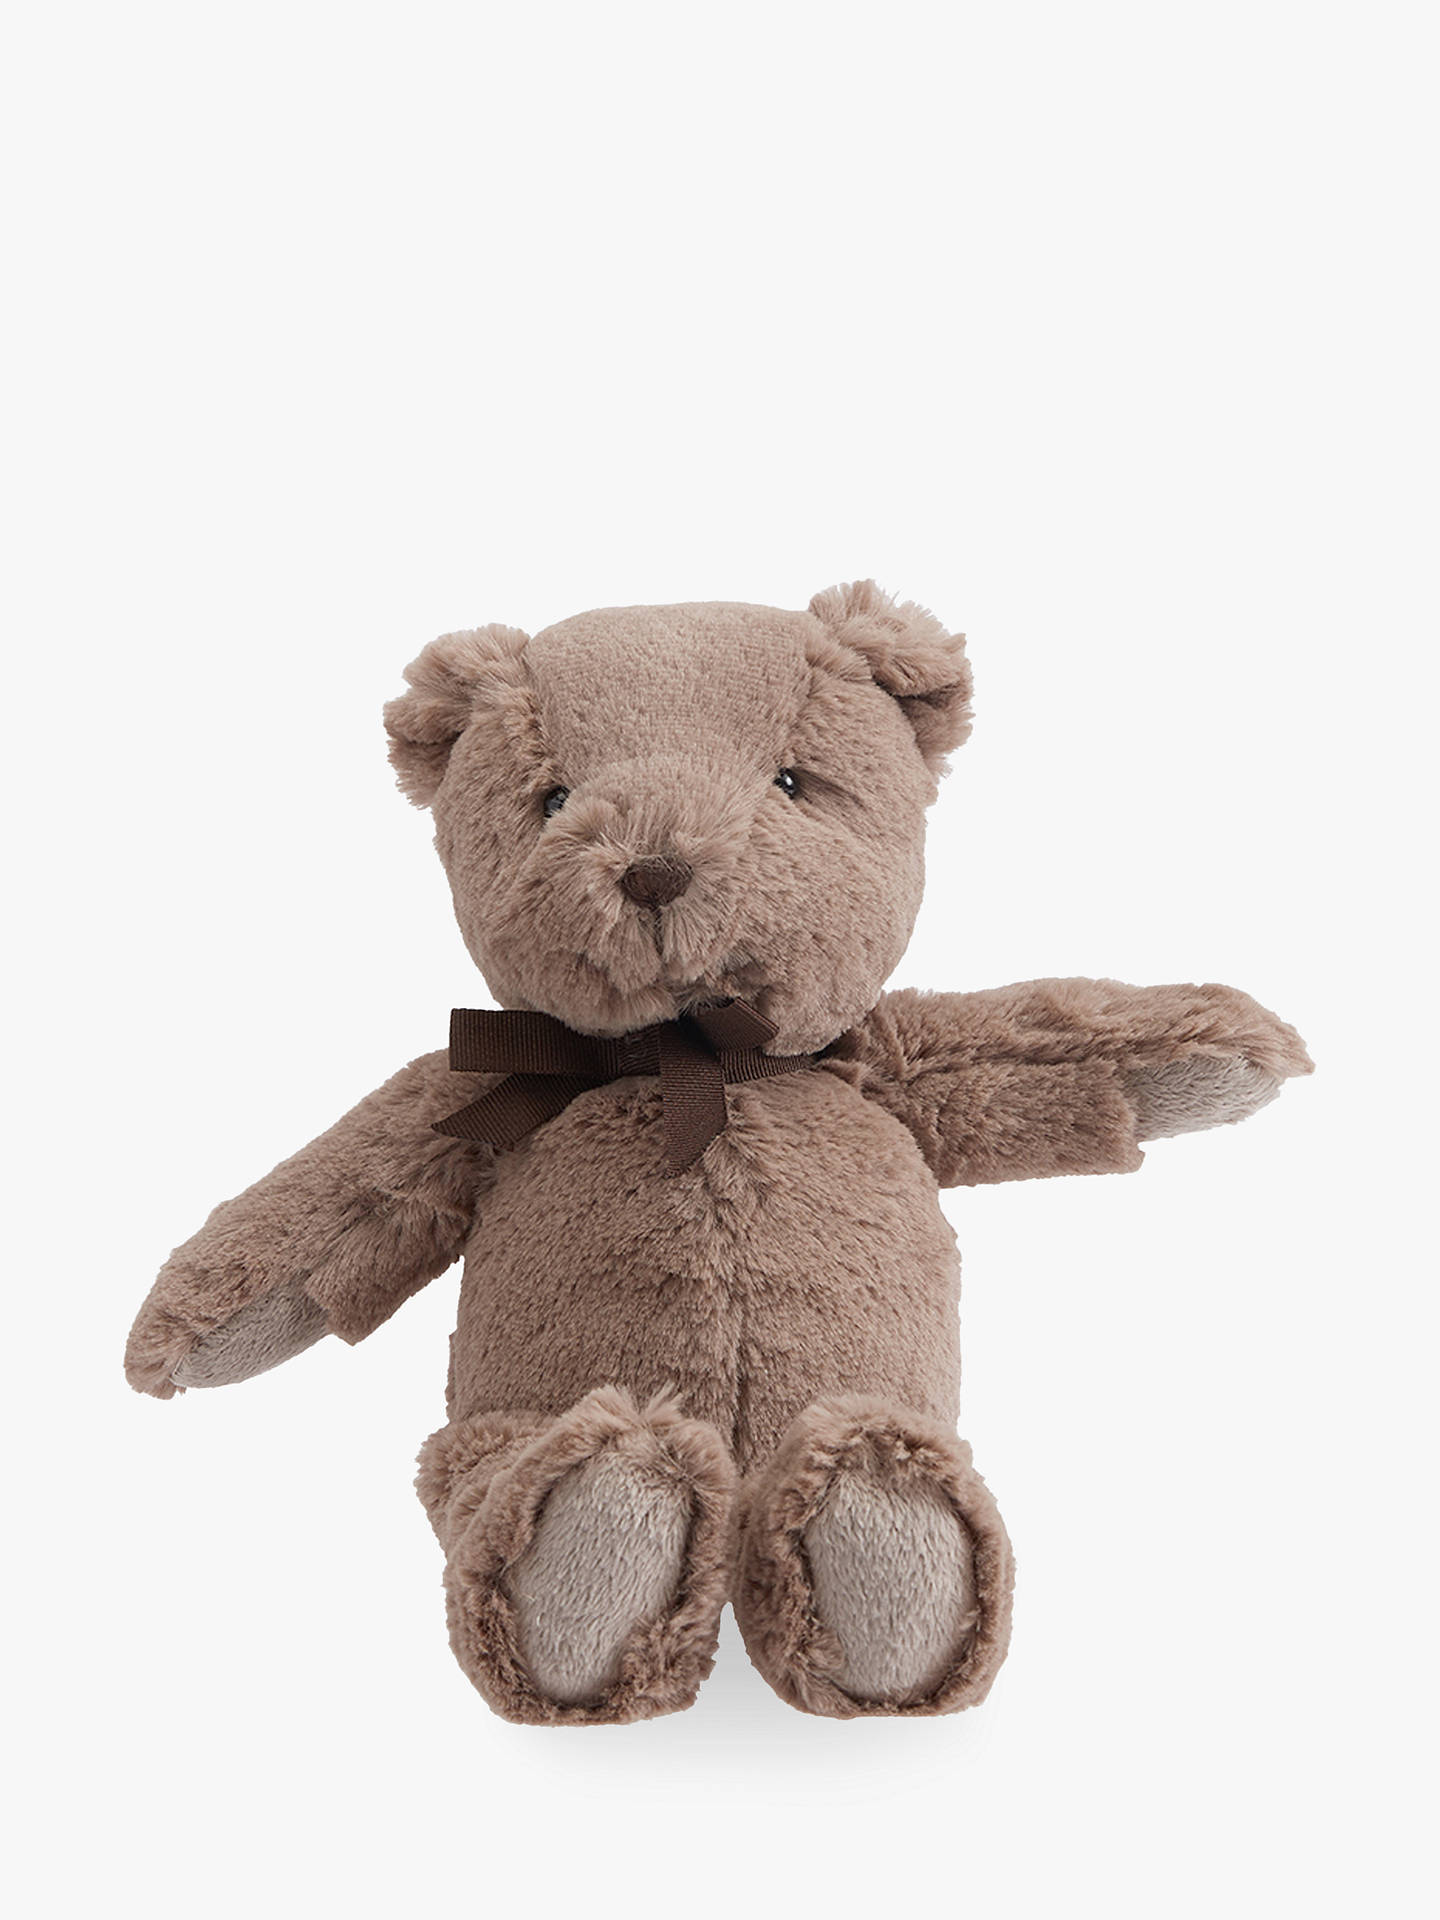 Pottery Barn Kids Plush Teddy Bear Soft Toy Small At John